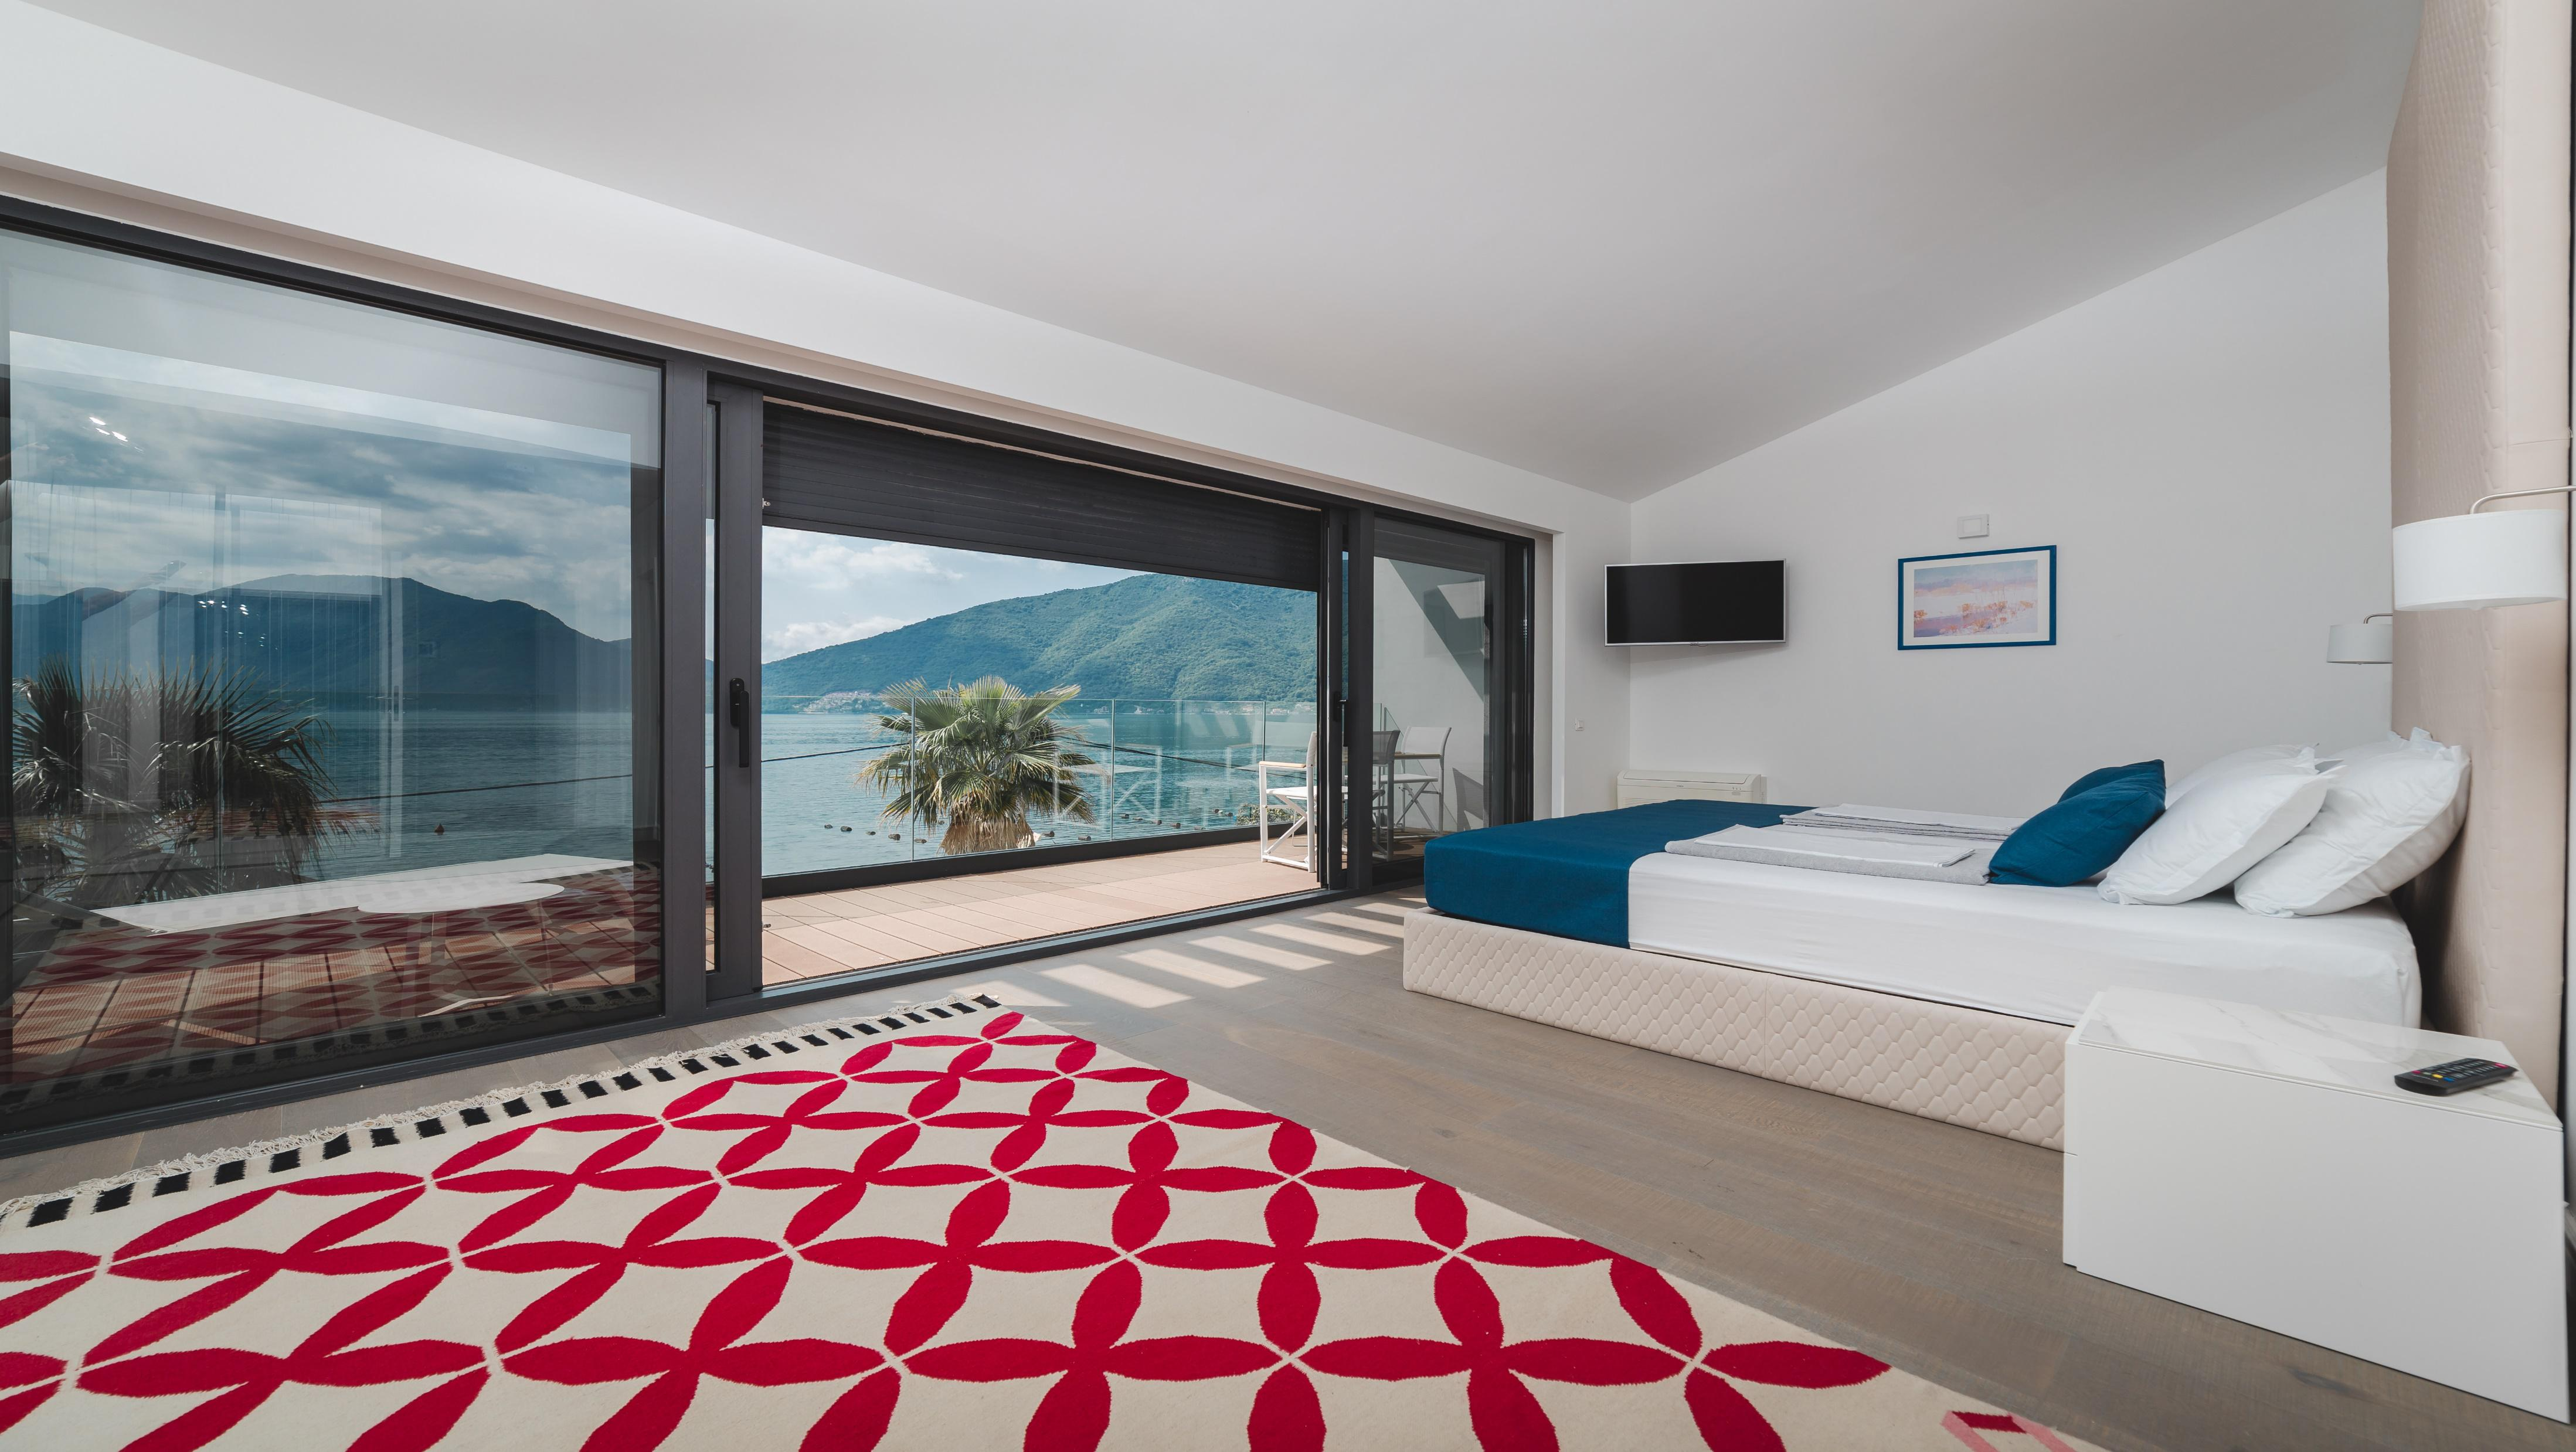 Front line new-built villa in the Bay of Kotor